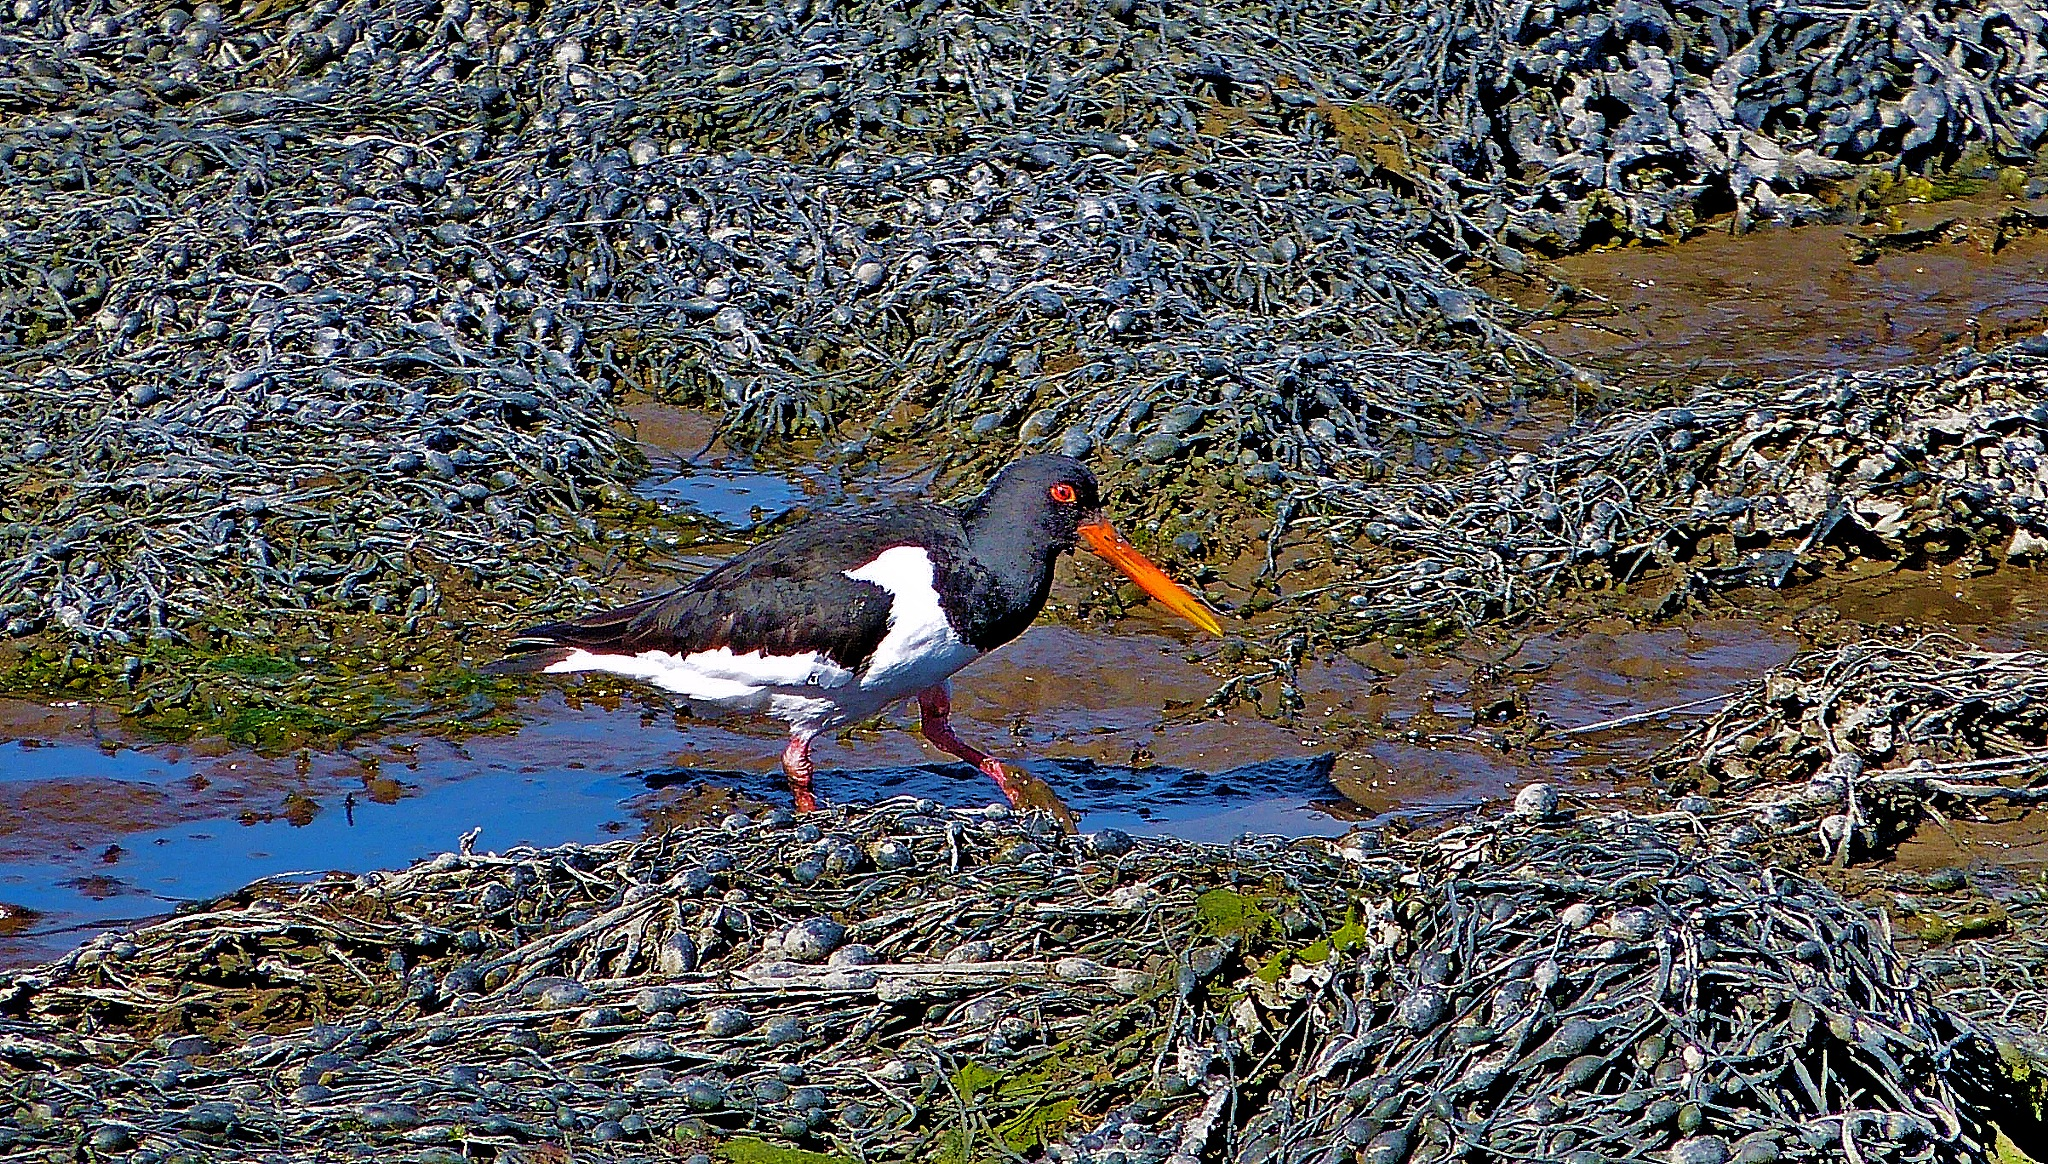 Oystercatcher  by PeterMChambers